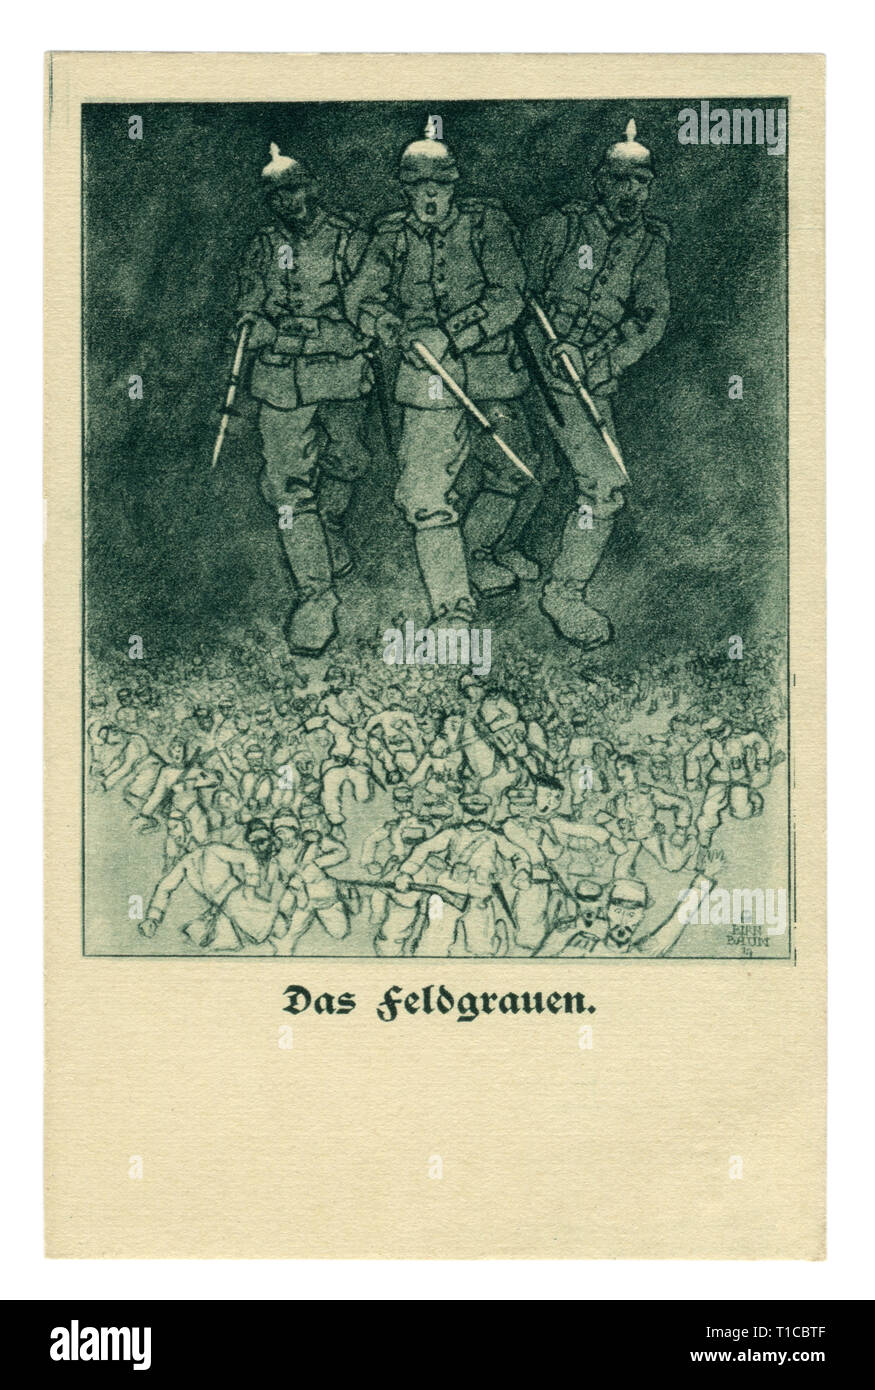 German historical postcard: Field gray color of the military uniform. Infantry soldiers with rifles and bayonets at the ready chase the allied forces - Stock Image